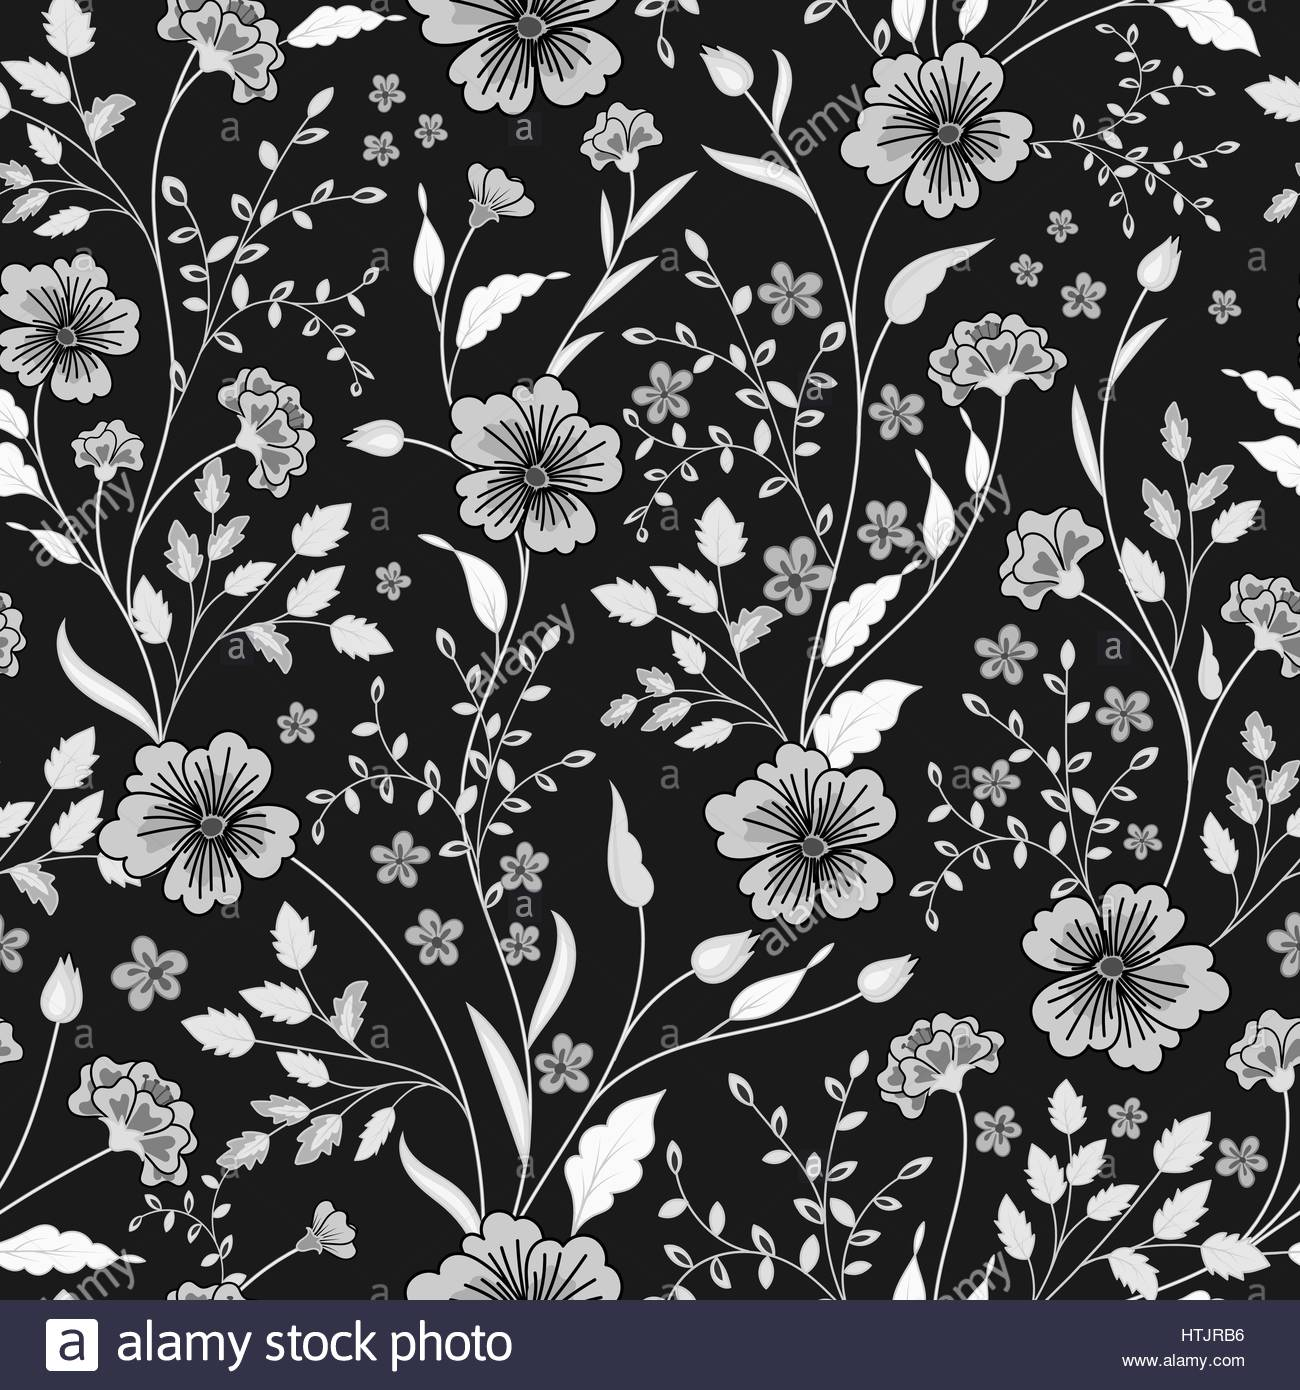 Floral Print Black And White Stock Photos & Images